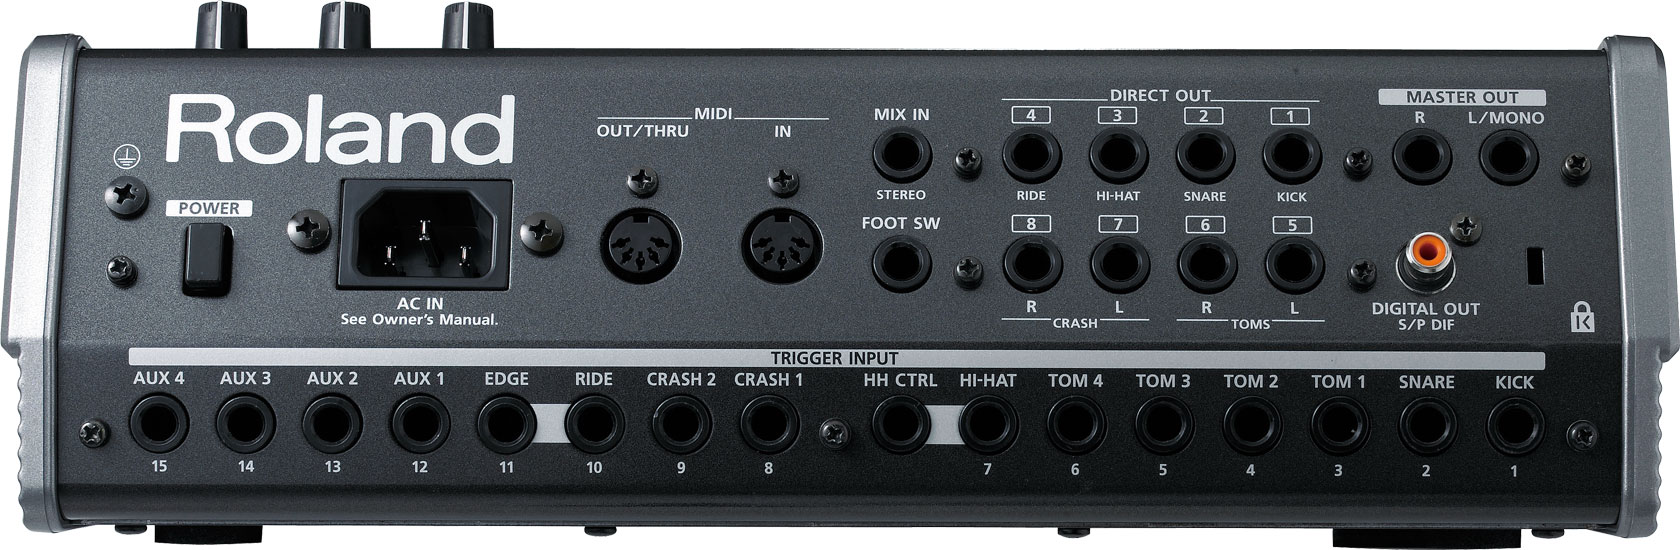 roland td 20x percussion sound module. Black Bedroom Furniture Sets. Home Design Ideas